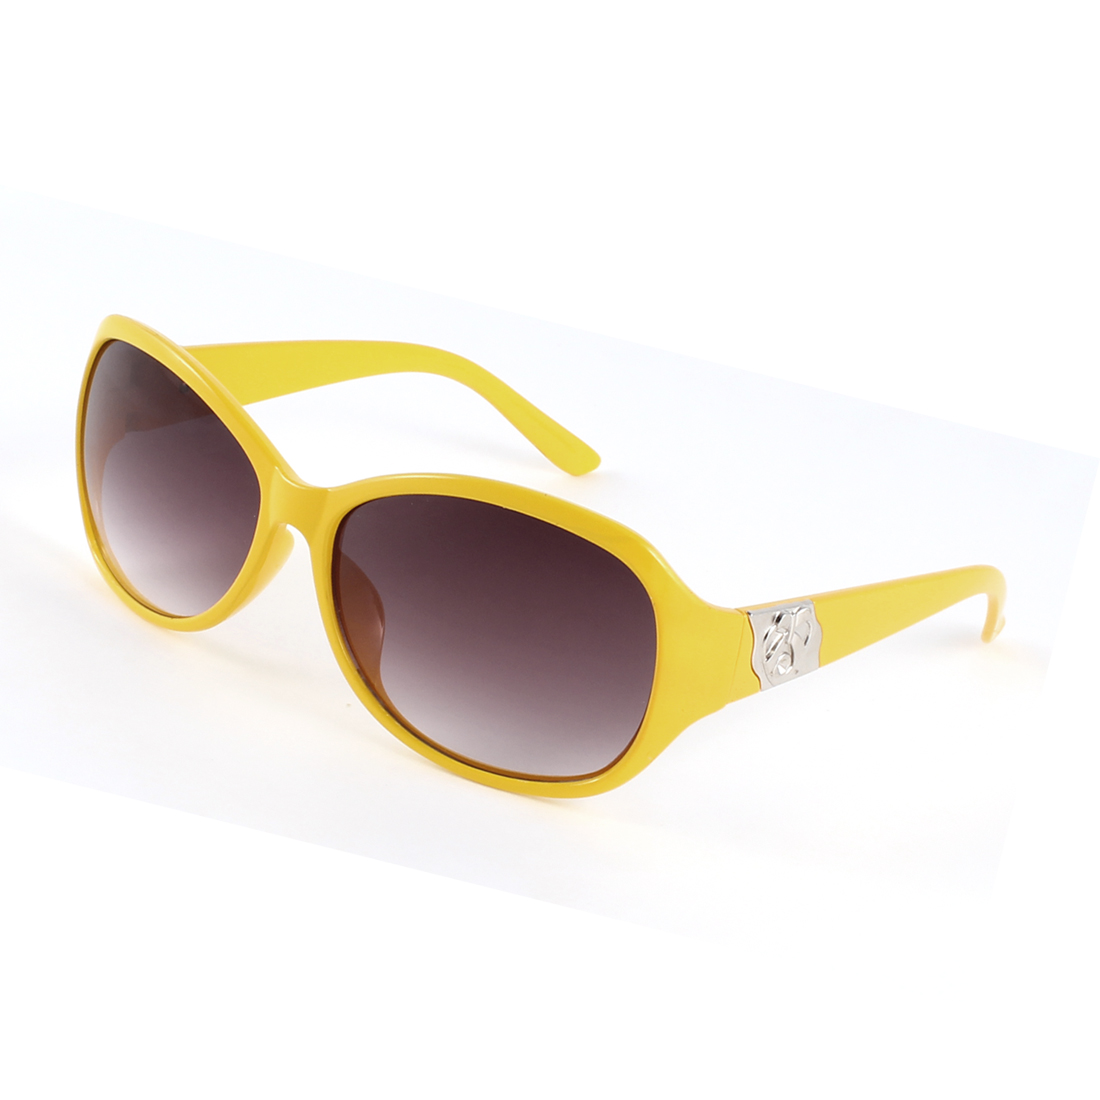 Lady Outdoor Yellow Frame Full Rim Tinted Lens Sunglasses